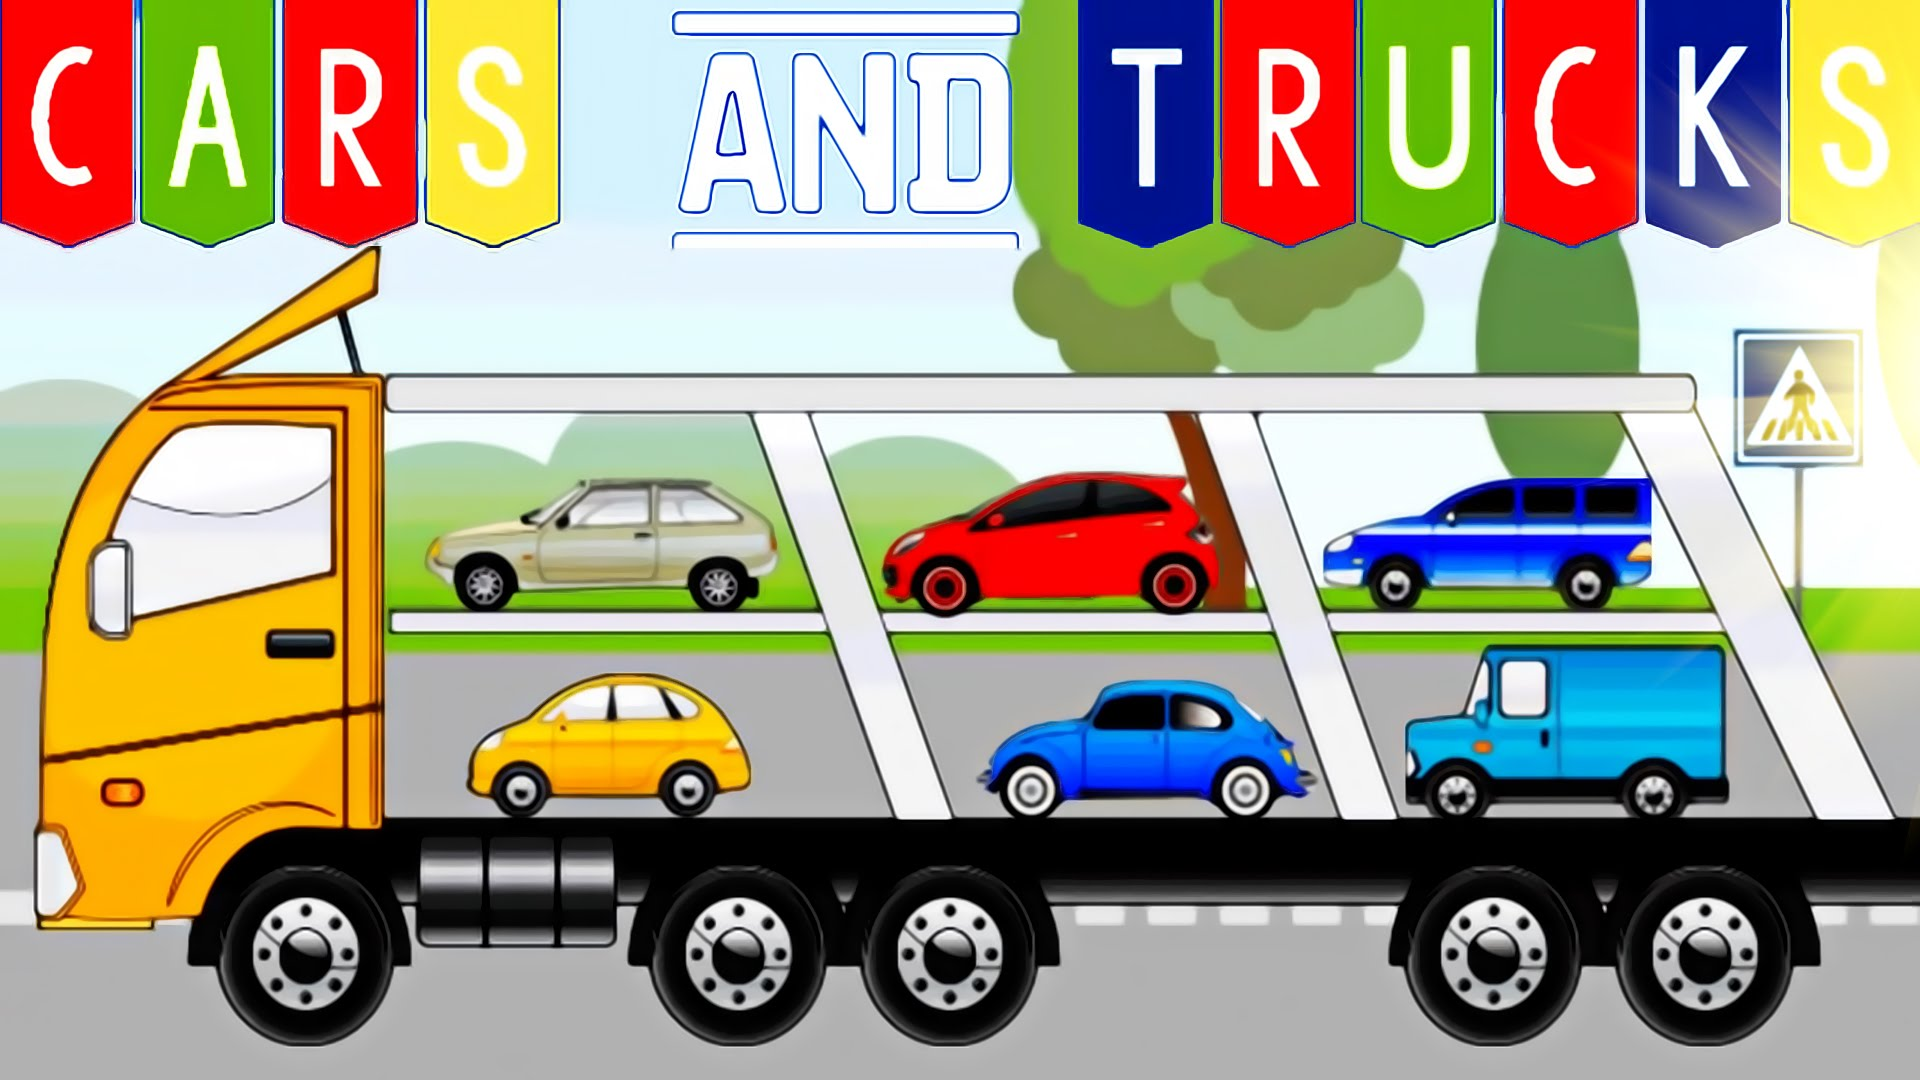 Kids puzzles and trucks. Cars clipart transporter